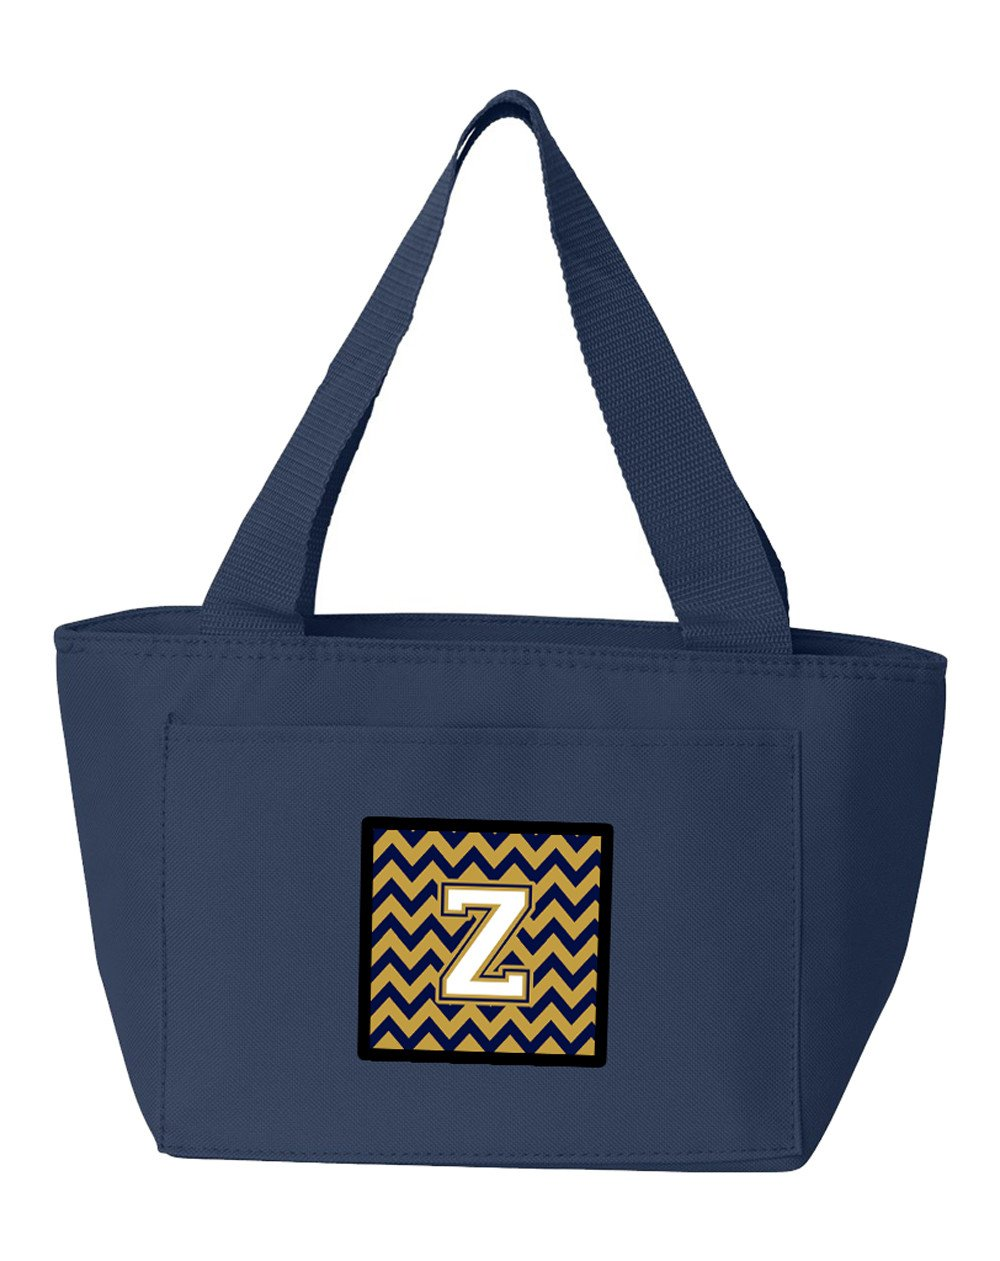 Letter Z Chevron Navy Blue and Gold Lunch Bag CJ1057-ZNA-8808 by Caroline's Treasures